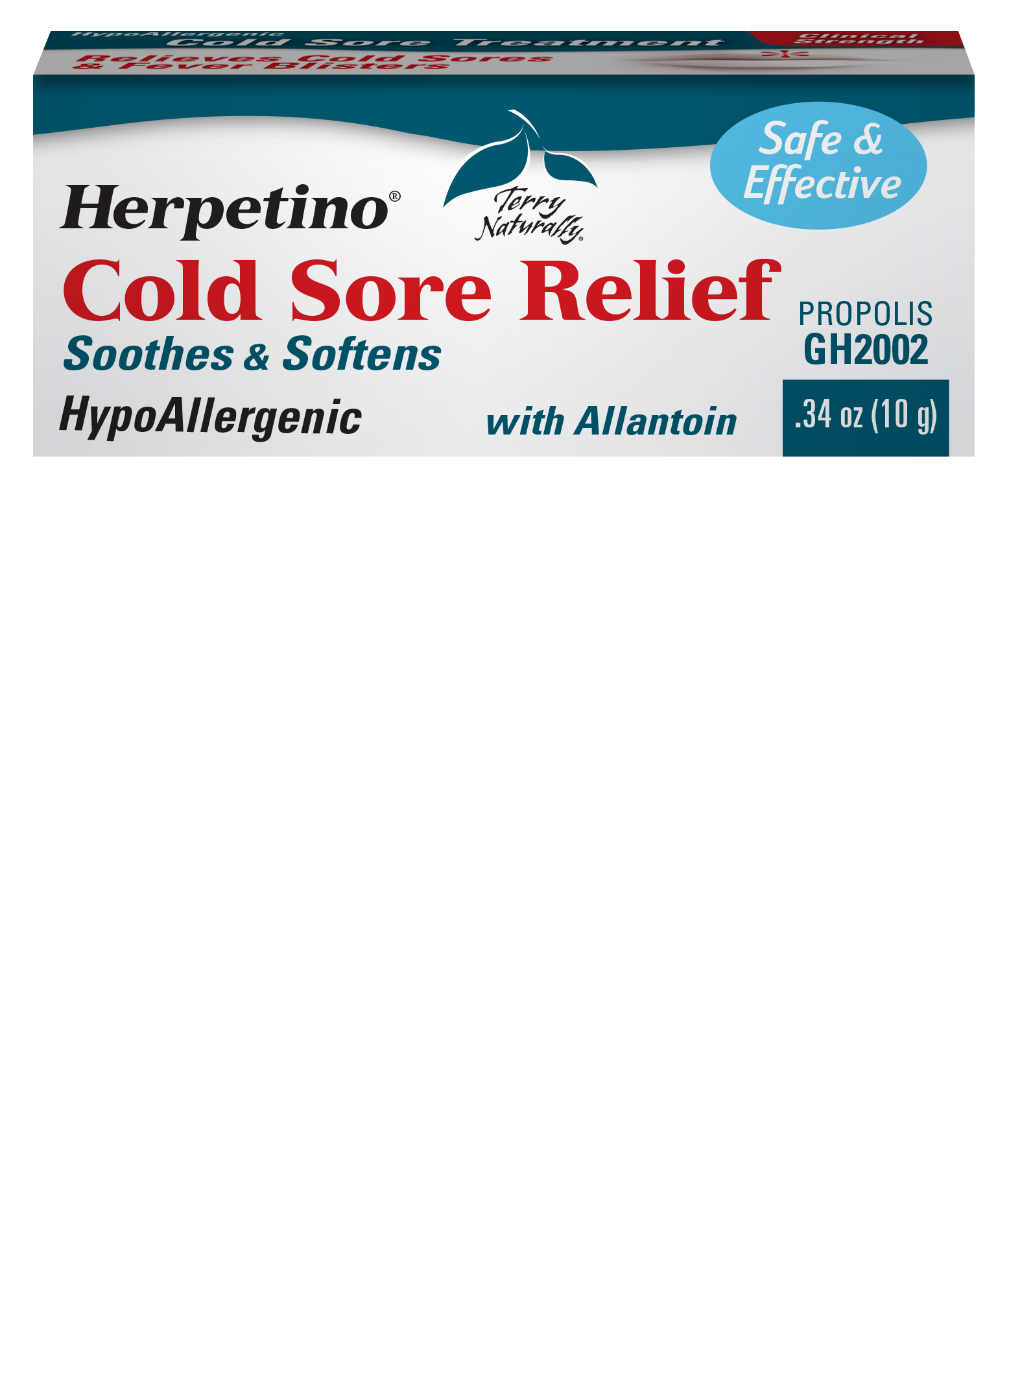 Herpetino Cold Sore relief, 10g (0.34oz)